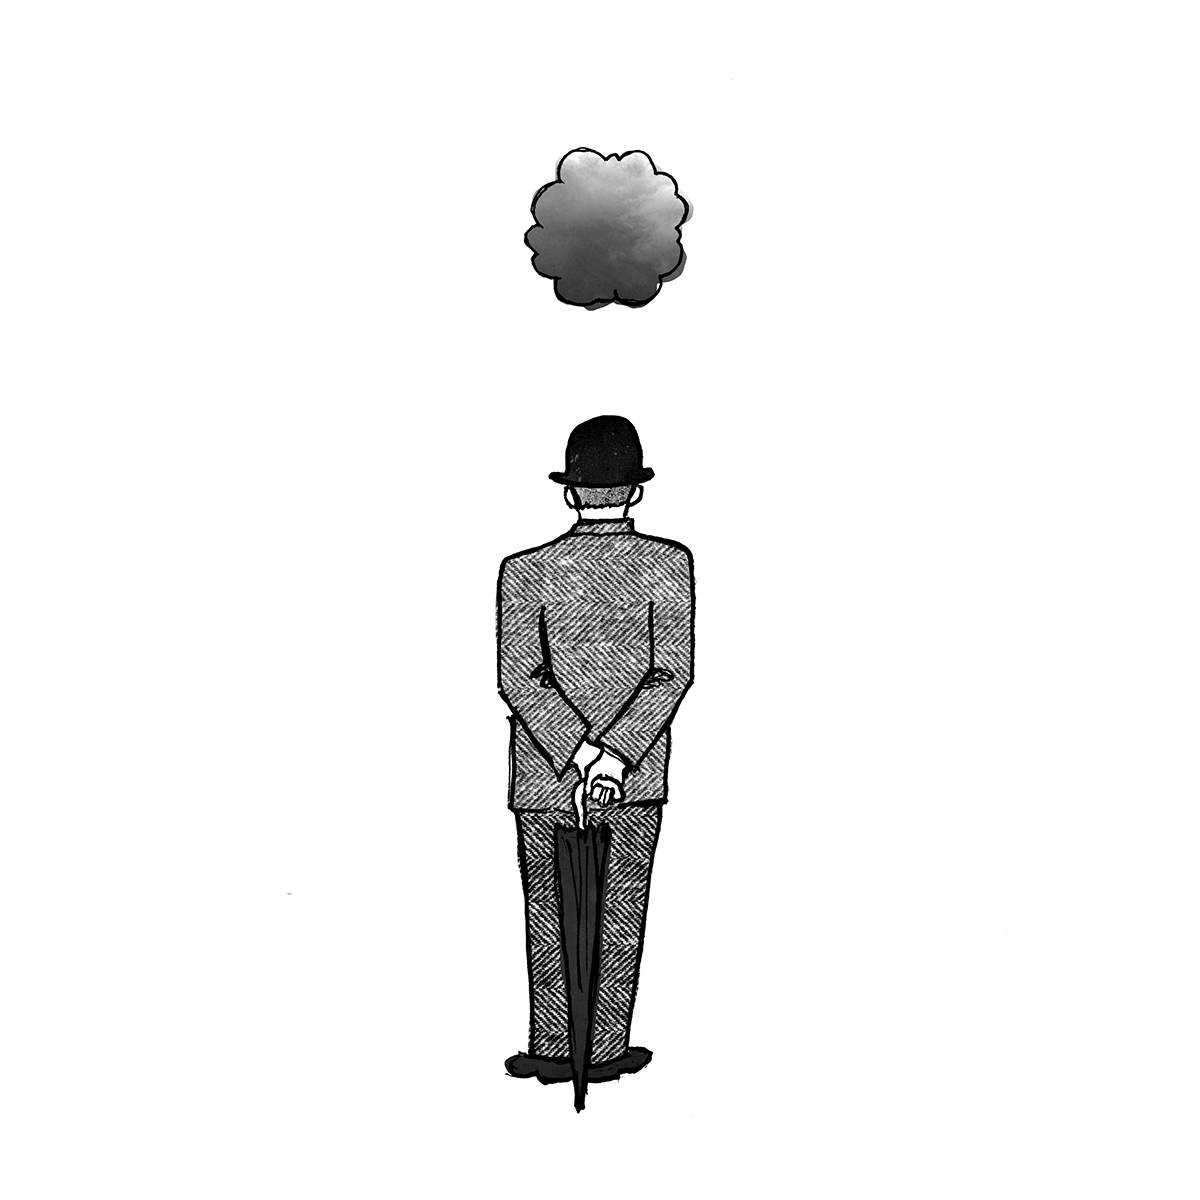 Black and white illustration of man waiting for the rain